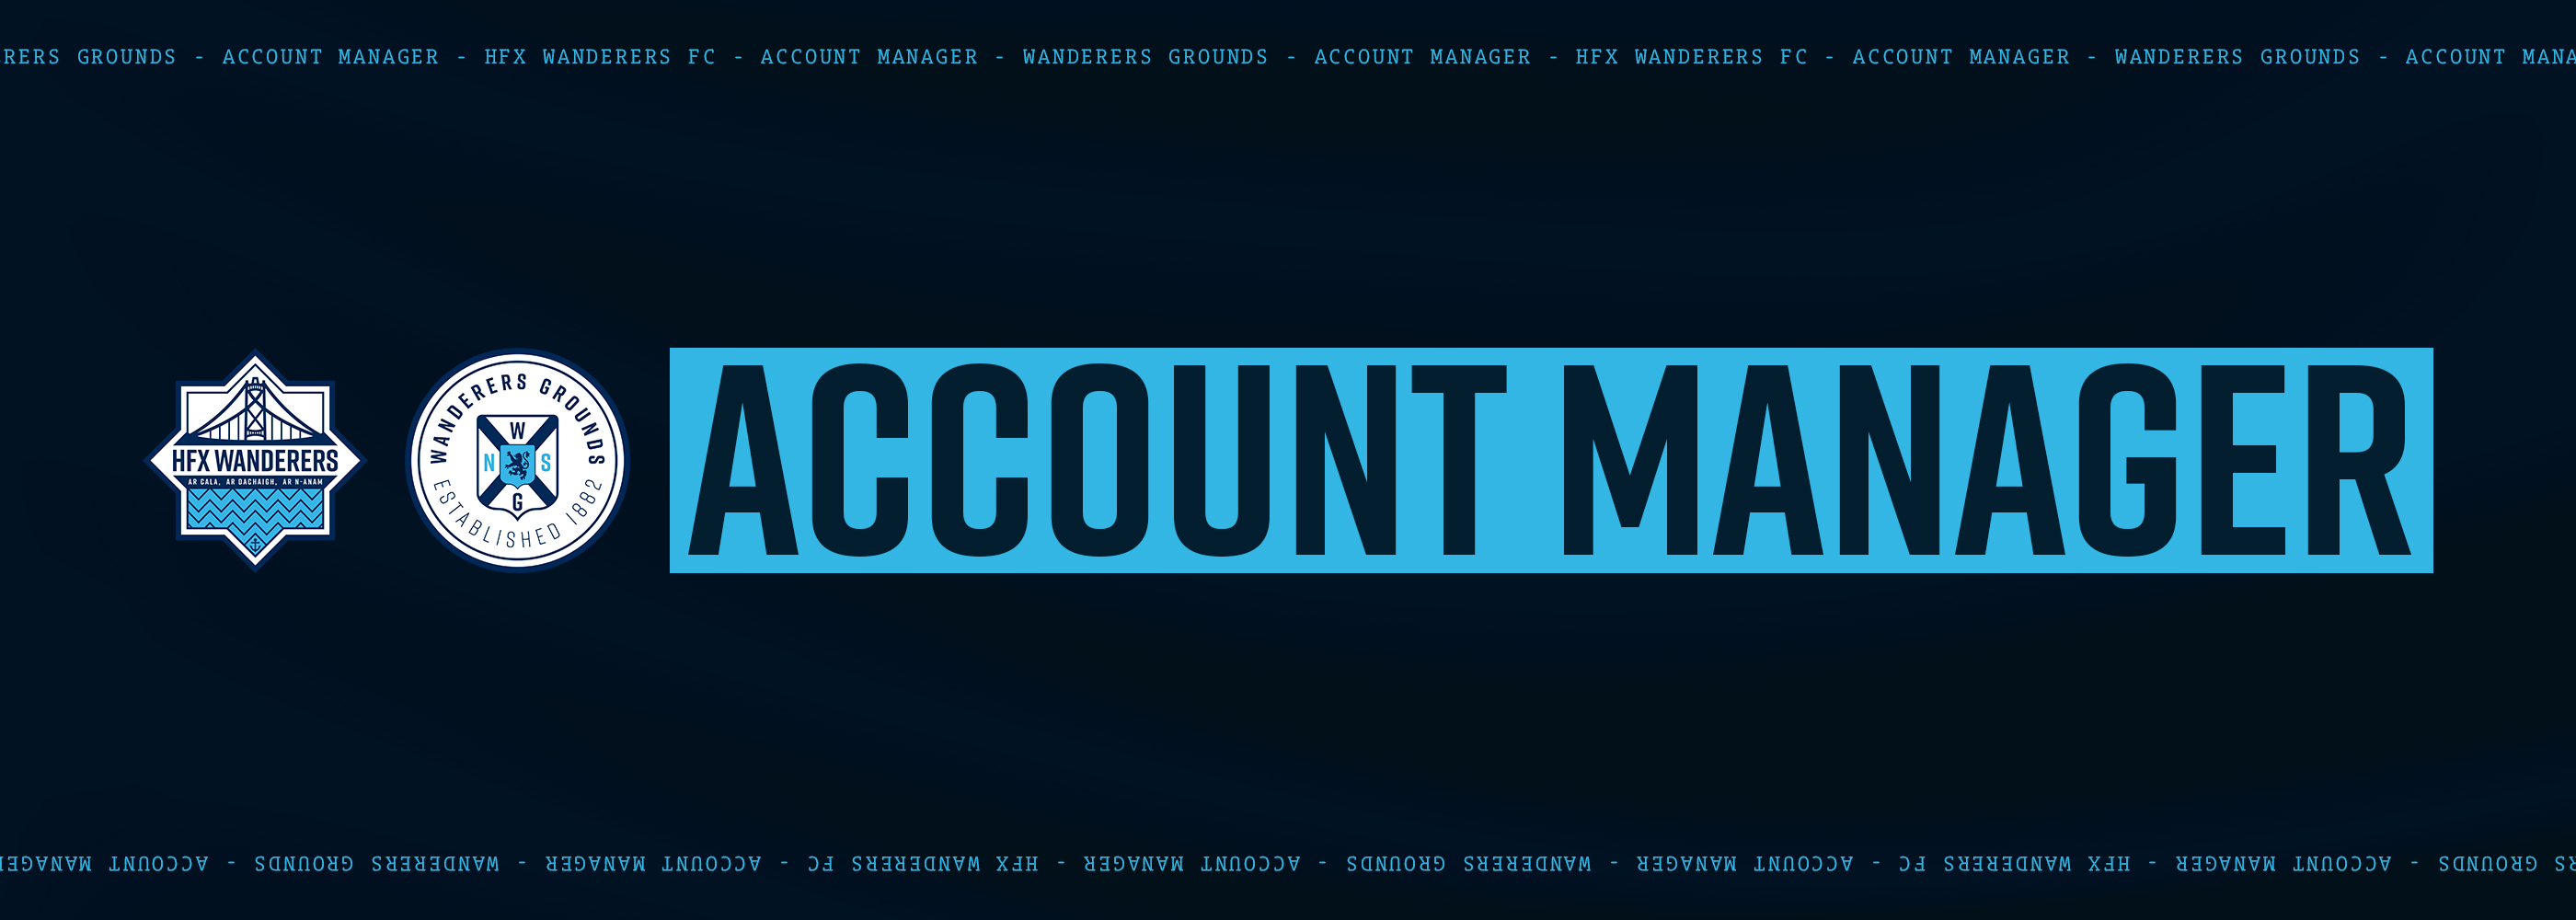 account_manager_featured